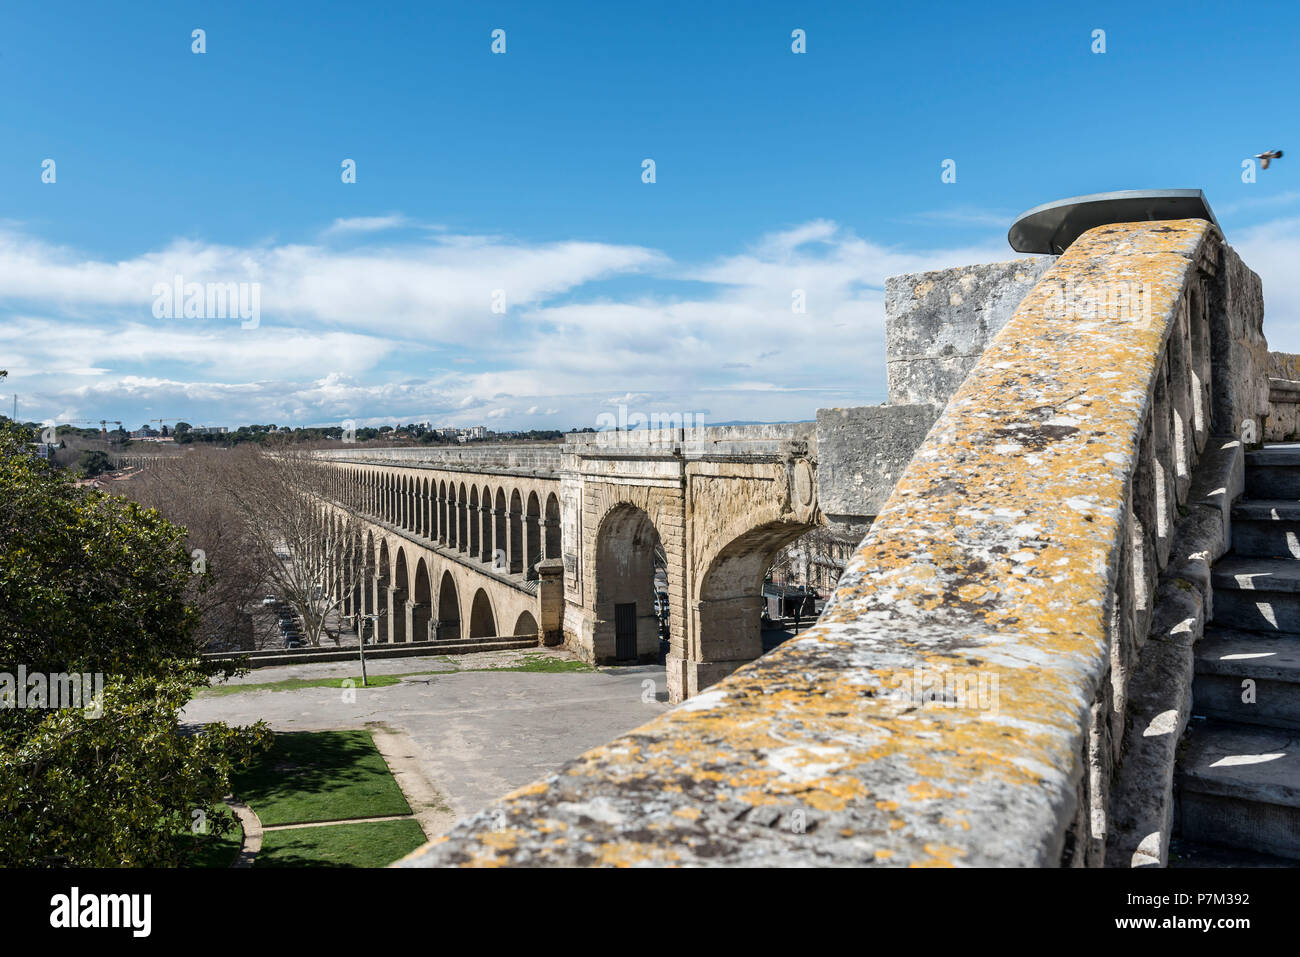 Montpellier, Herault, France, Saint-Clément aqueduct in the old town of Montpellier in the Languedoc Roussillon region Stock Photo